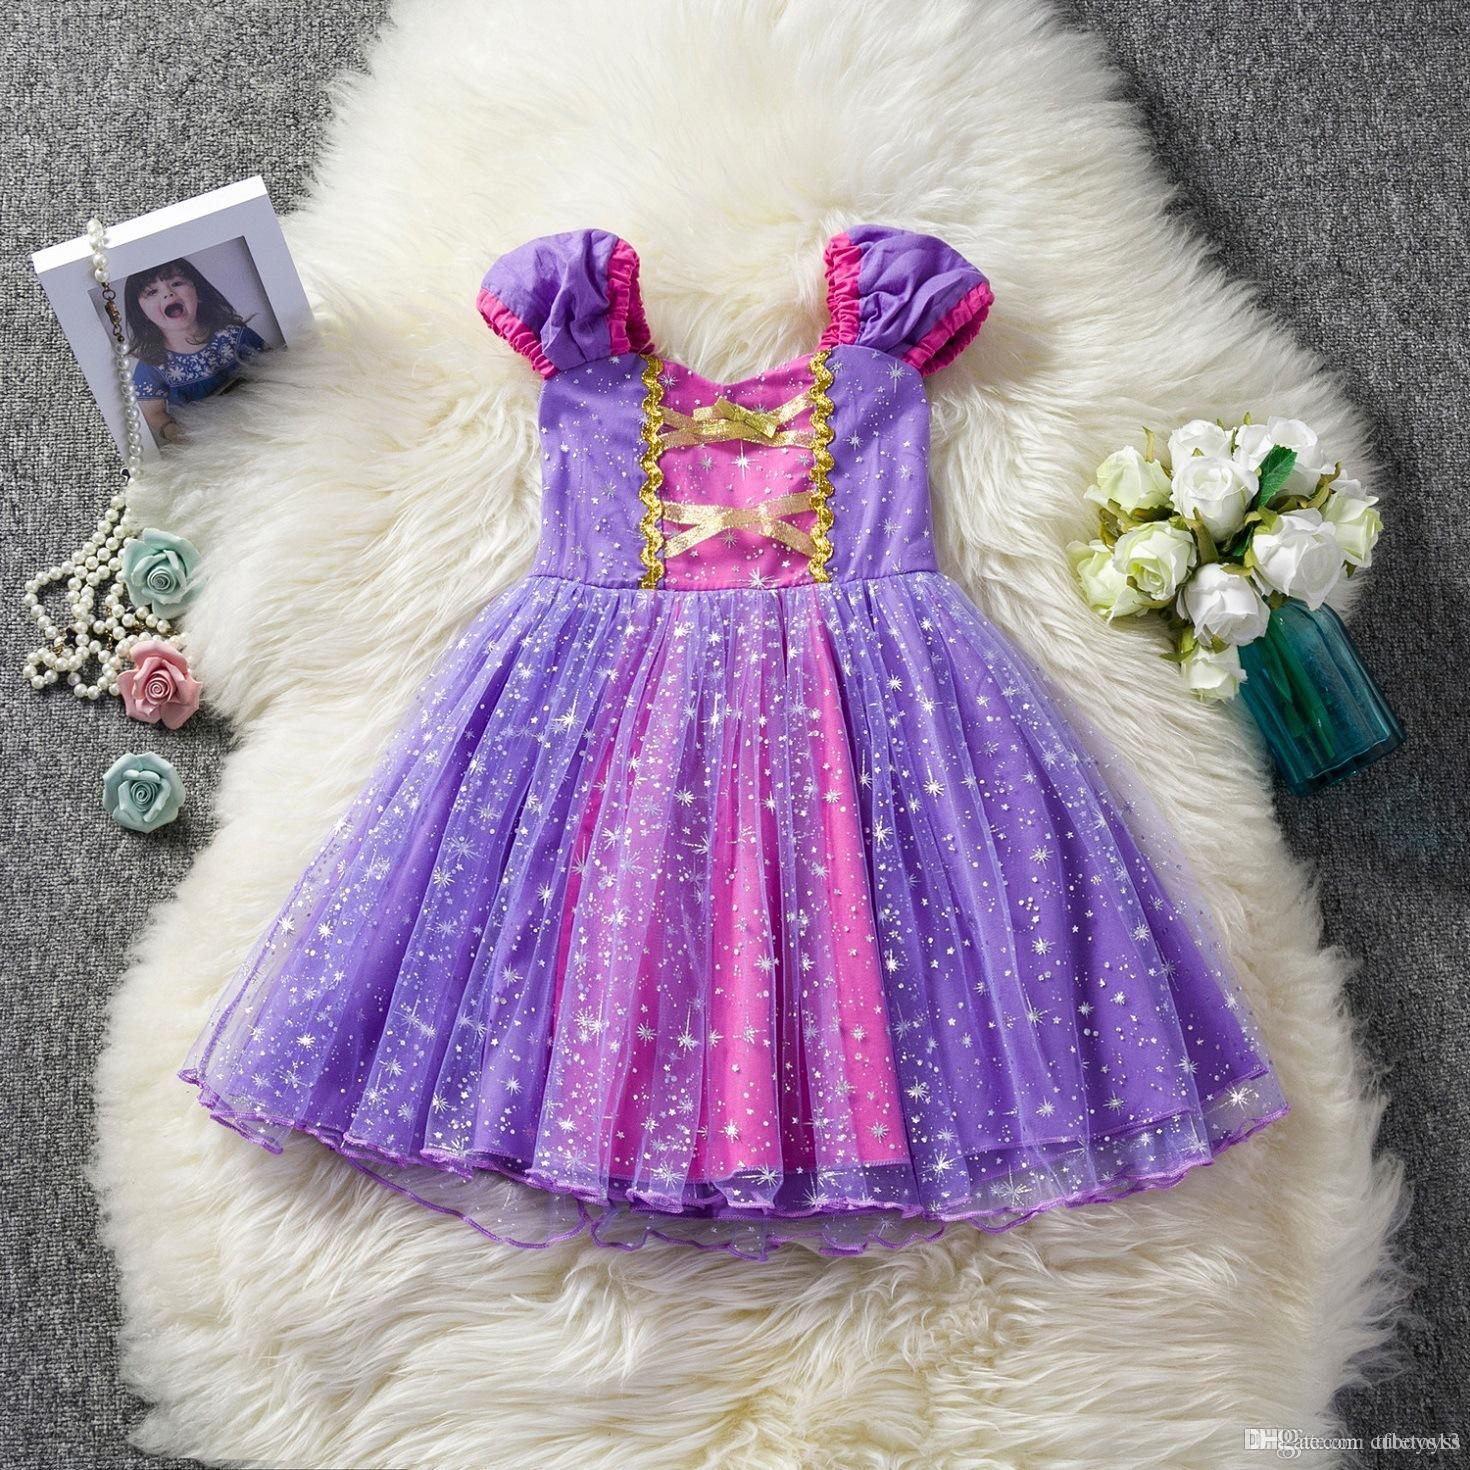 Cute 2019 Little Girls Princess Cartoon Children Kids princess dresses Casual Clothes Kid Trip Frocks Christmas Party Costume dresses